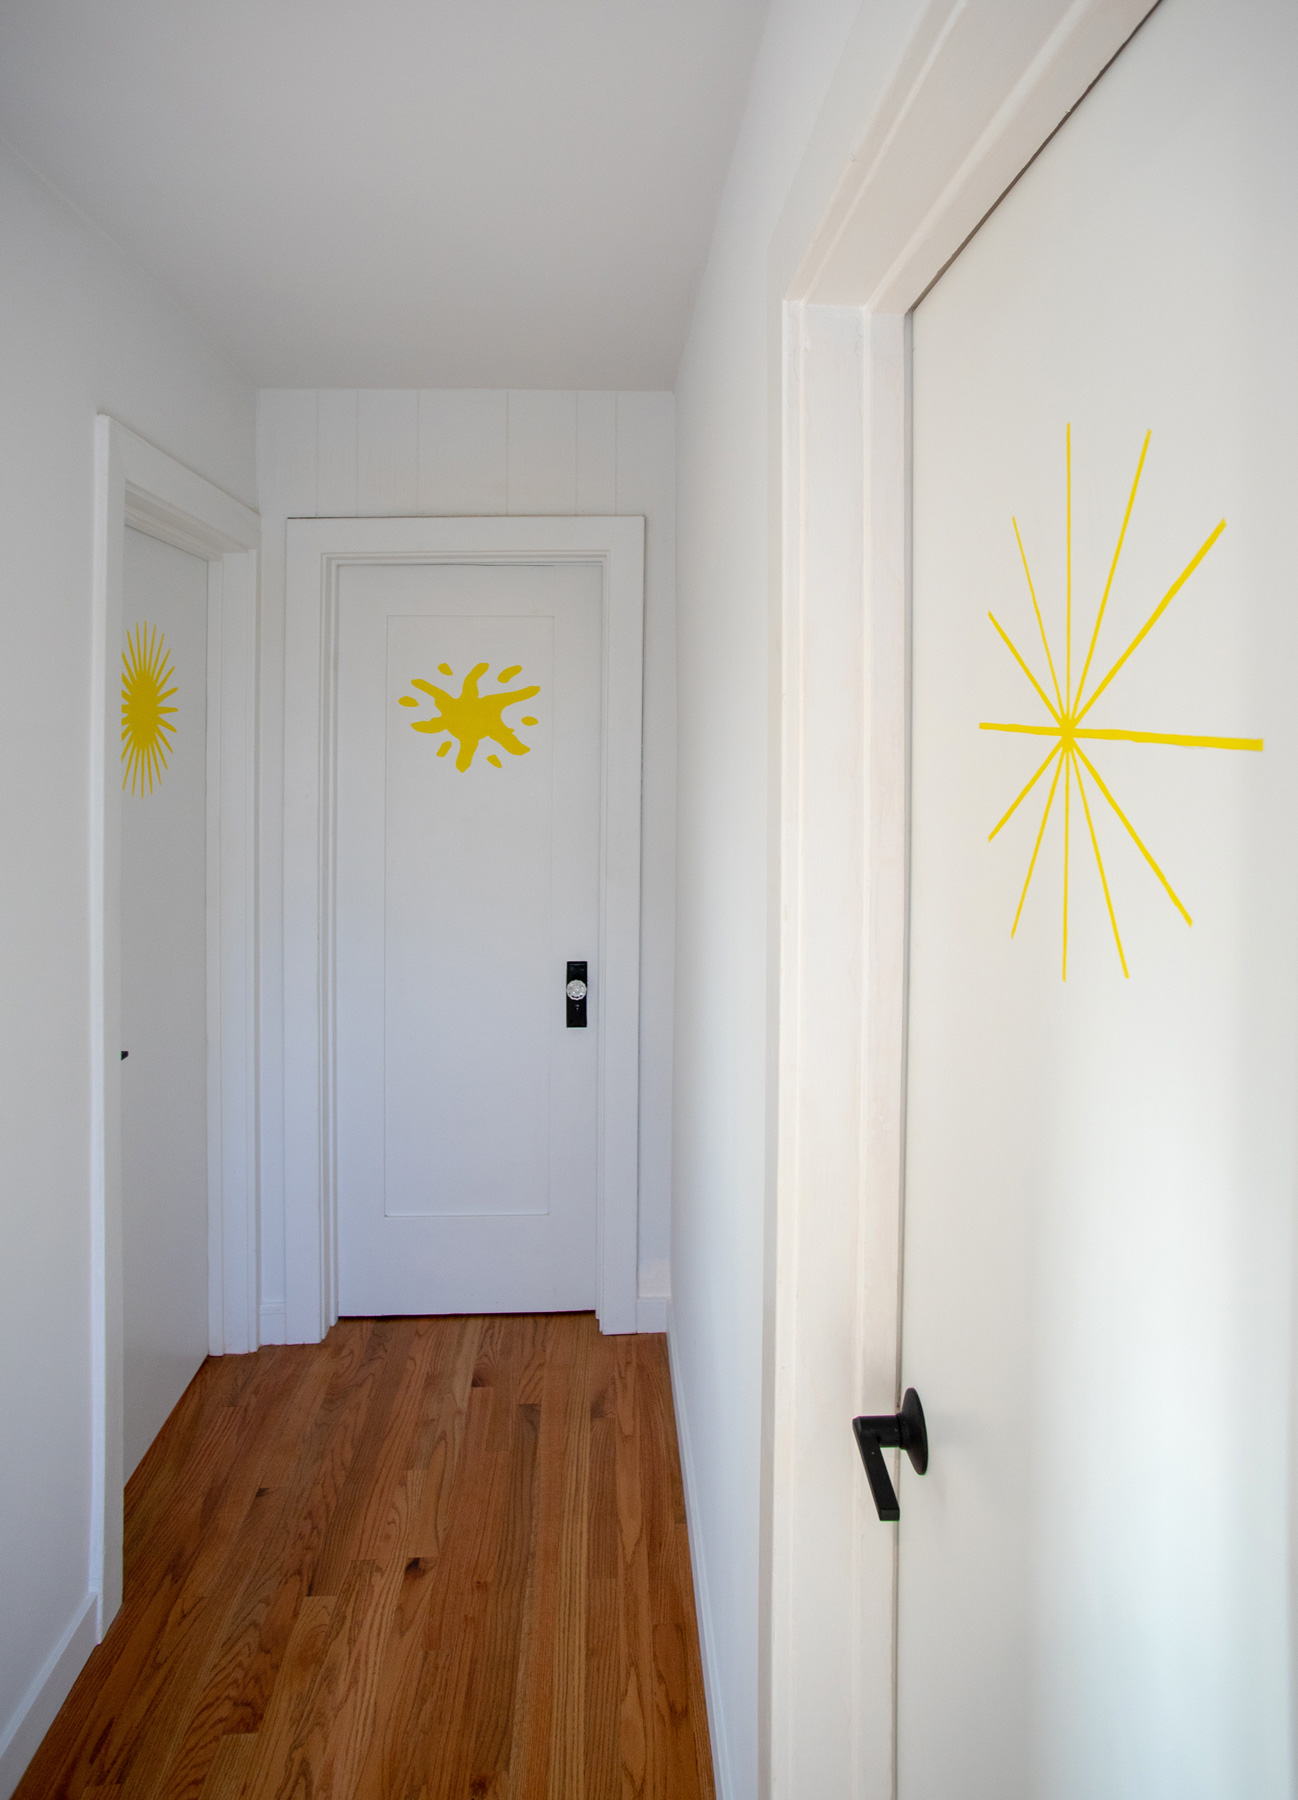 Let the Sun In (A Sun for Every Door), 2019